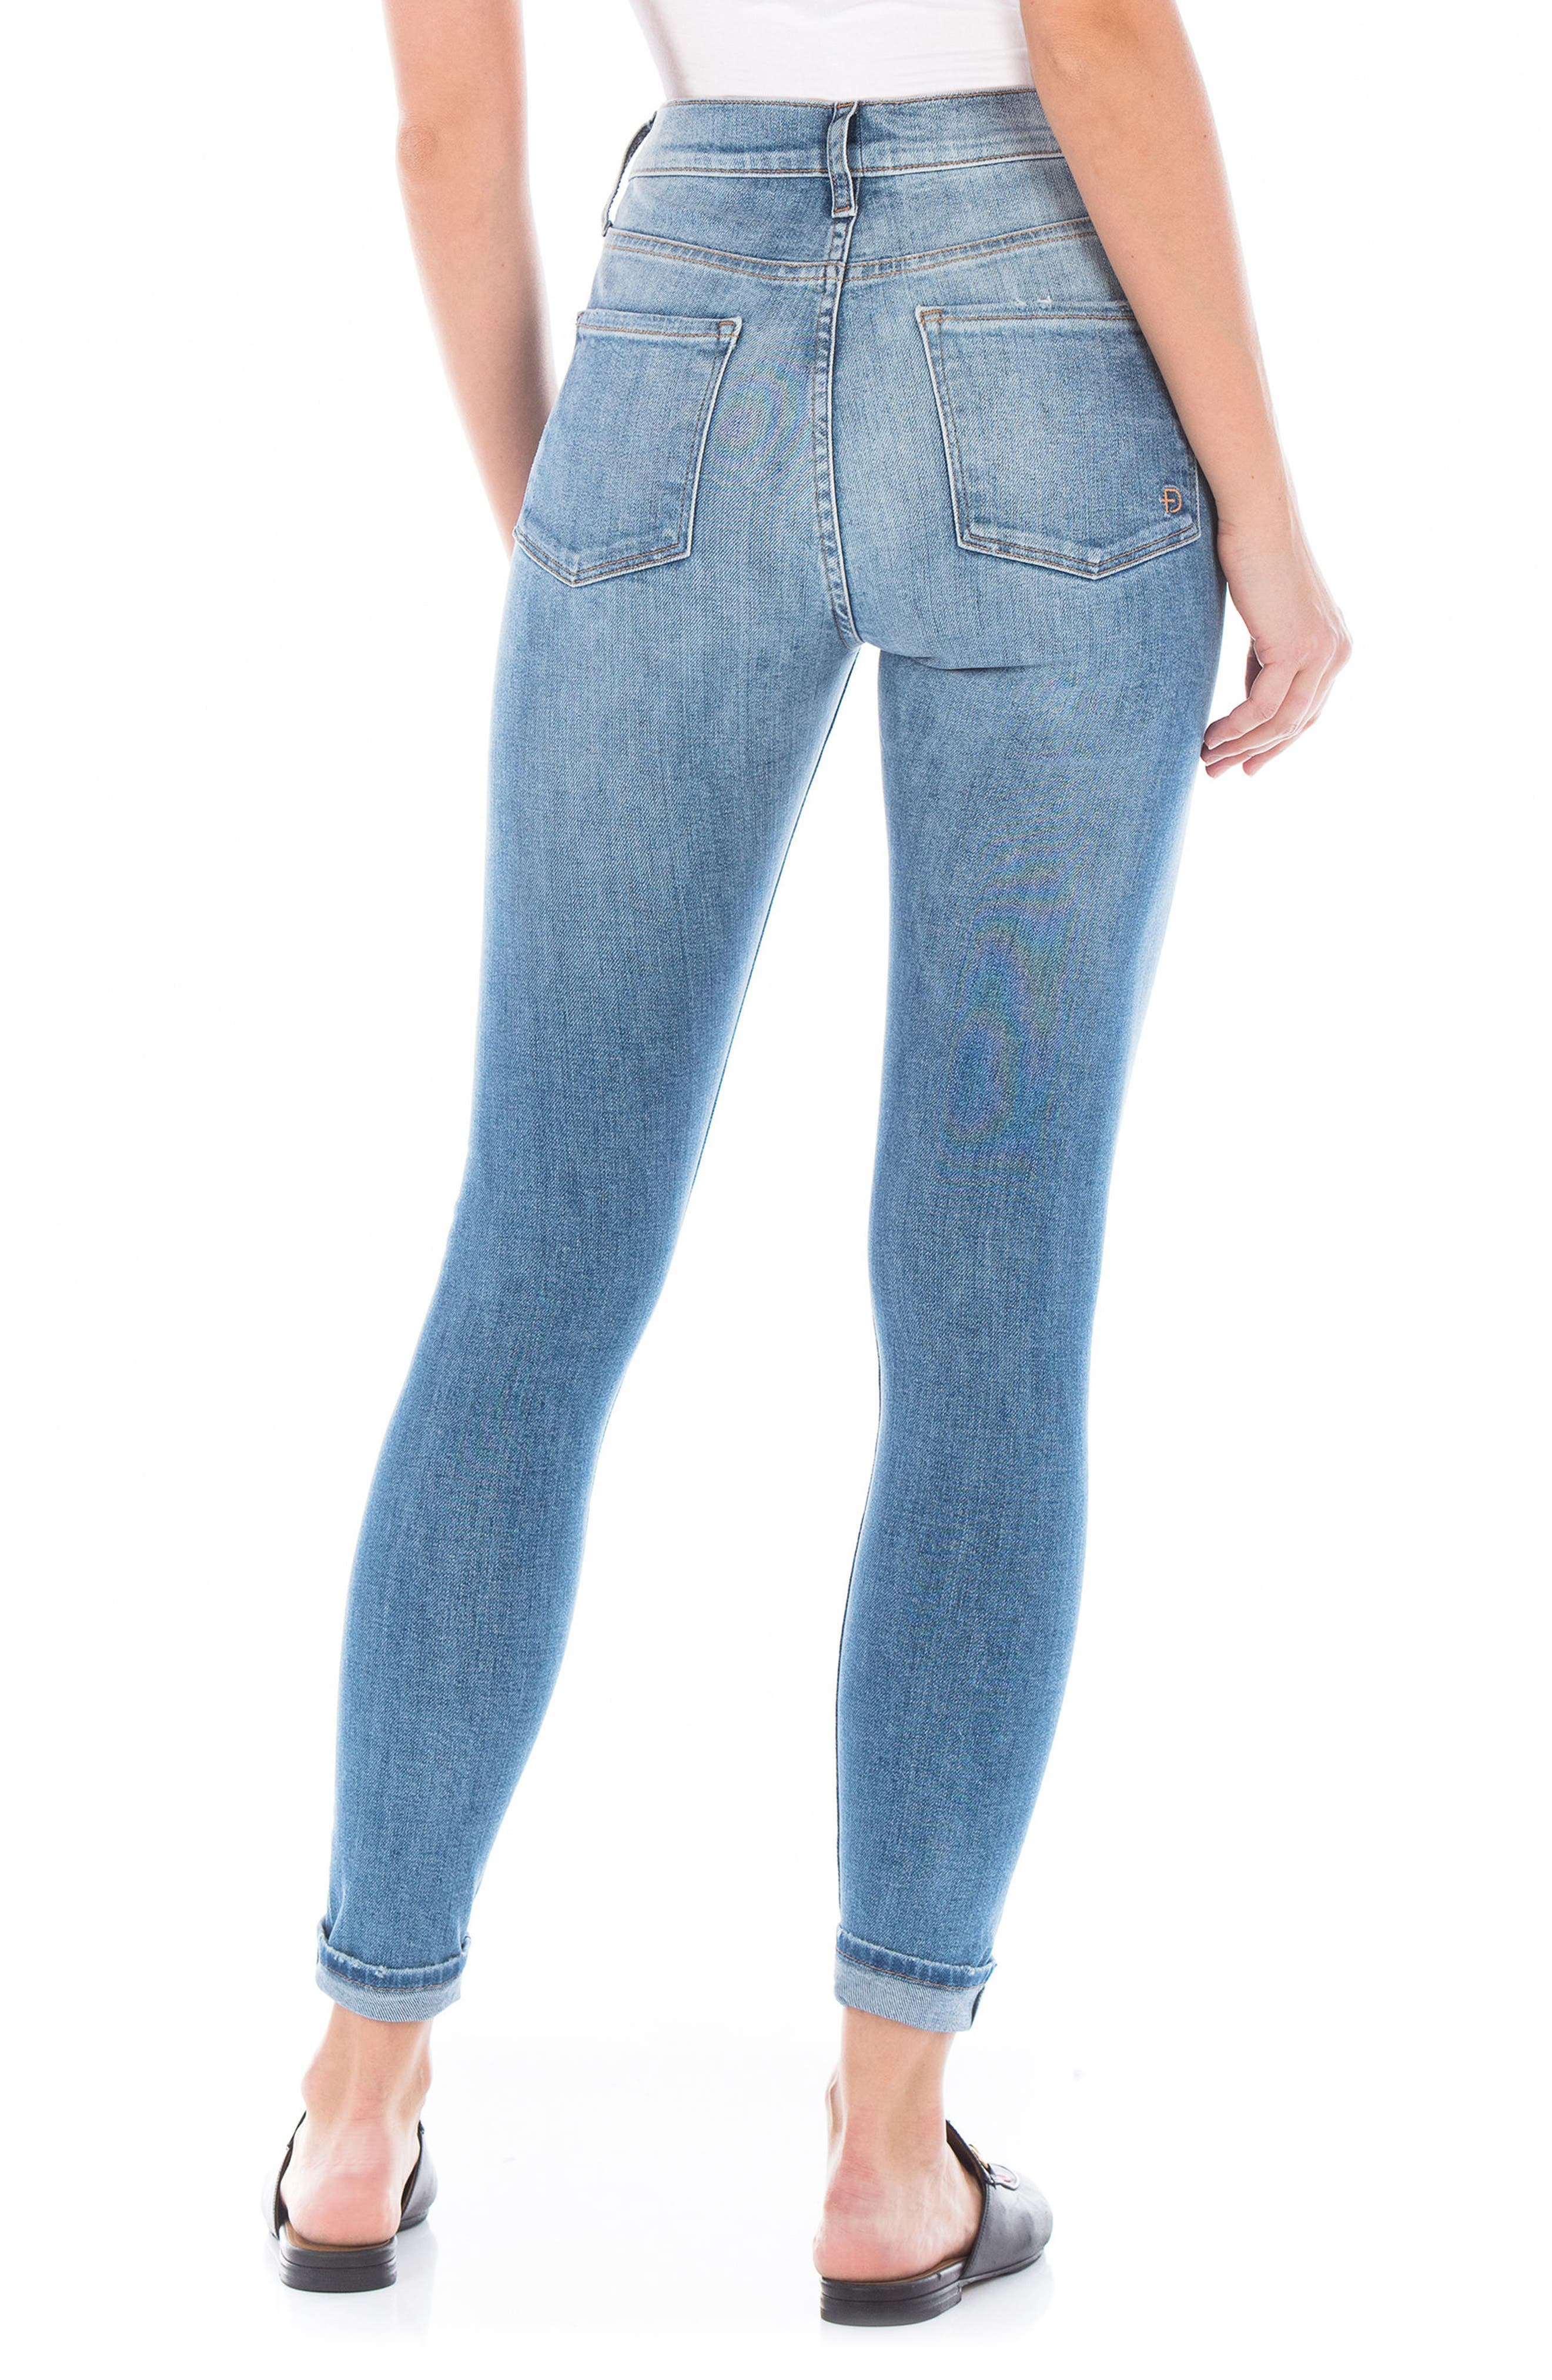 Gwen High Waist Skinny Jeans,                             Alternate thumbnail 2, color,                             76 Summer